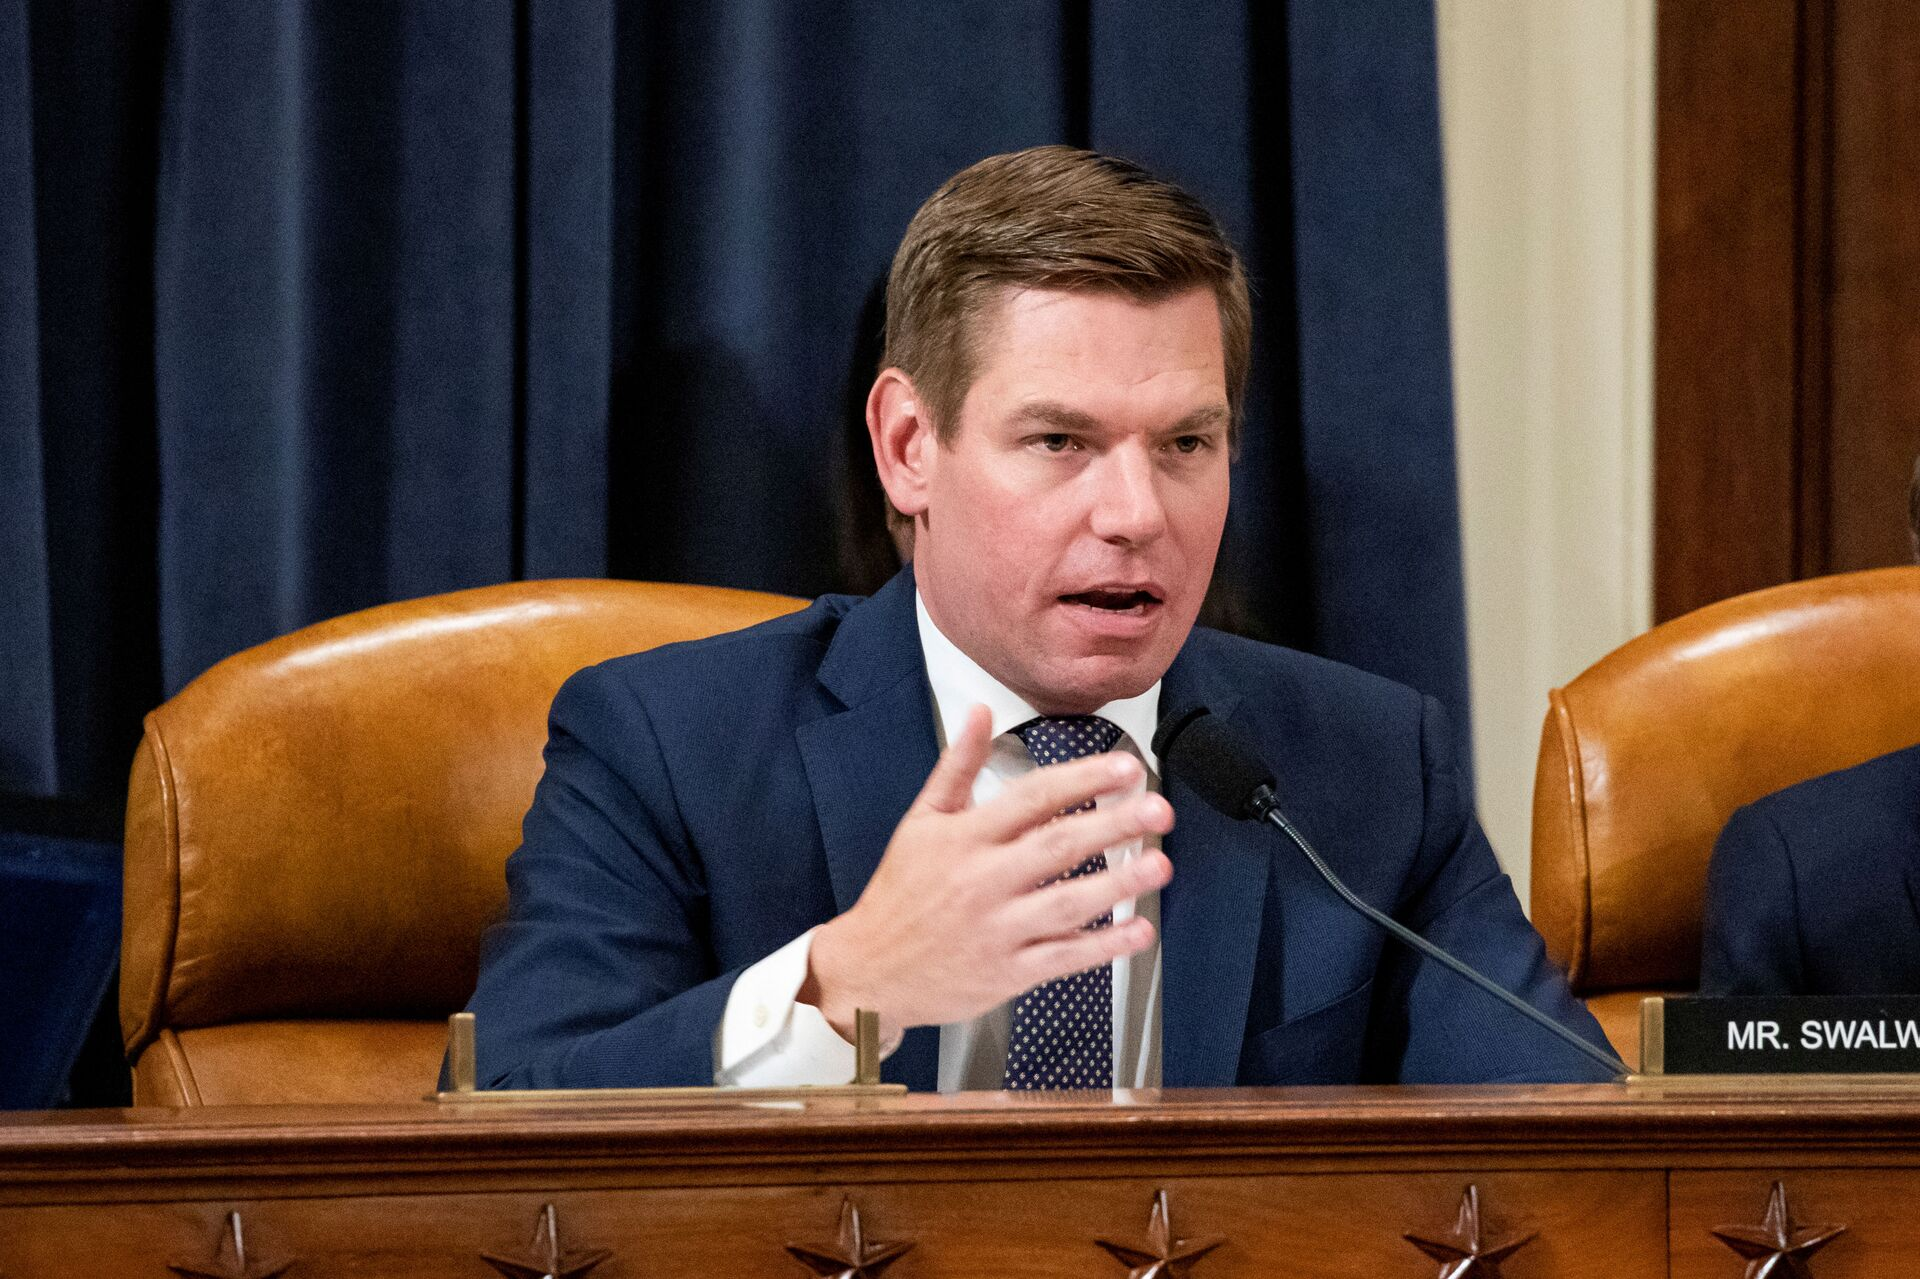 'Security Threat': House Republicans Request FBI Briefing on Swalwell's Ties to Alleged Chinese Spy - Sputnik International, 1920, 24.02.2021